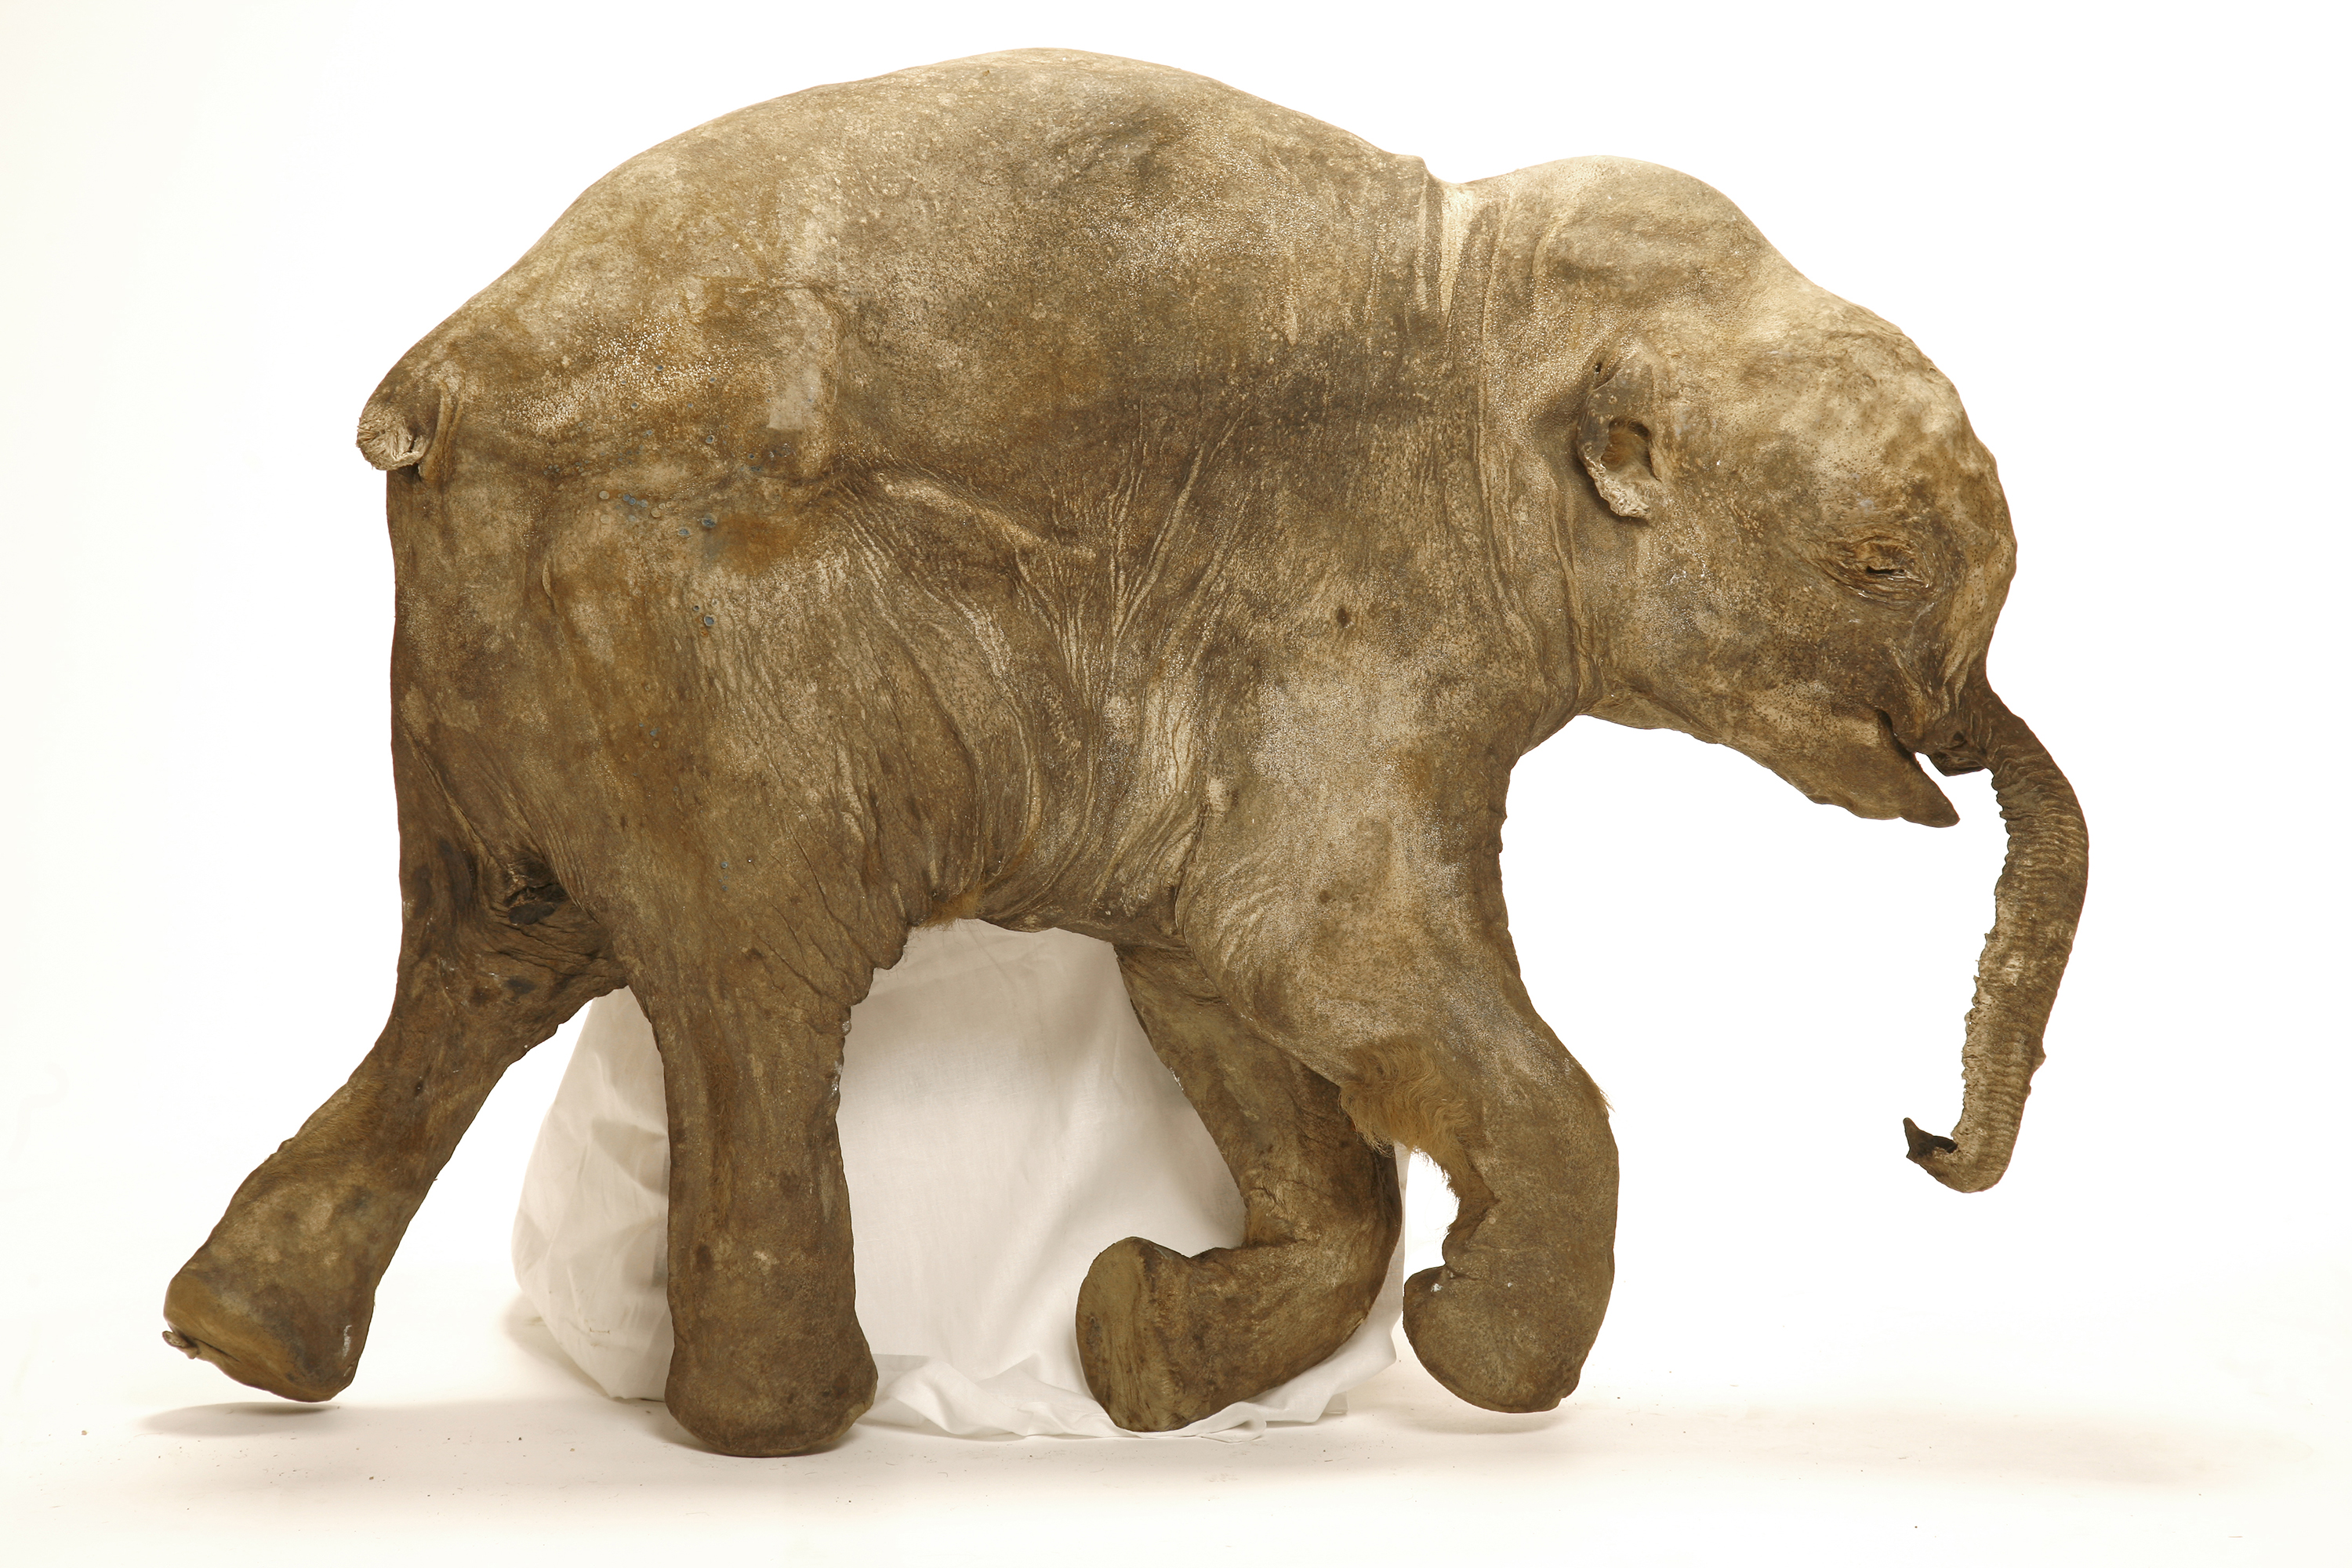 short-lives-violent-deaths-two-ct-scanned-siberian-mammoth-calves-yield-trove-of-insights-Lyuba-orig-20140708